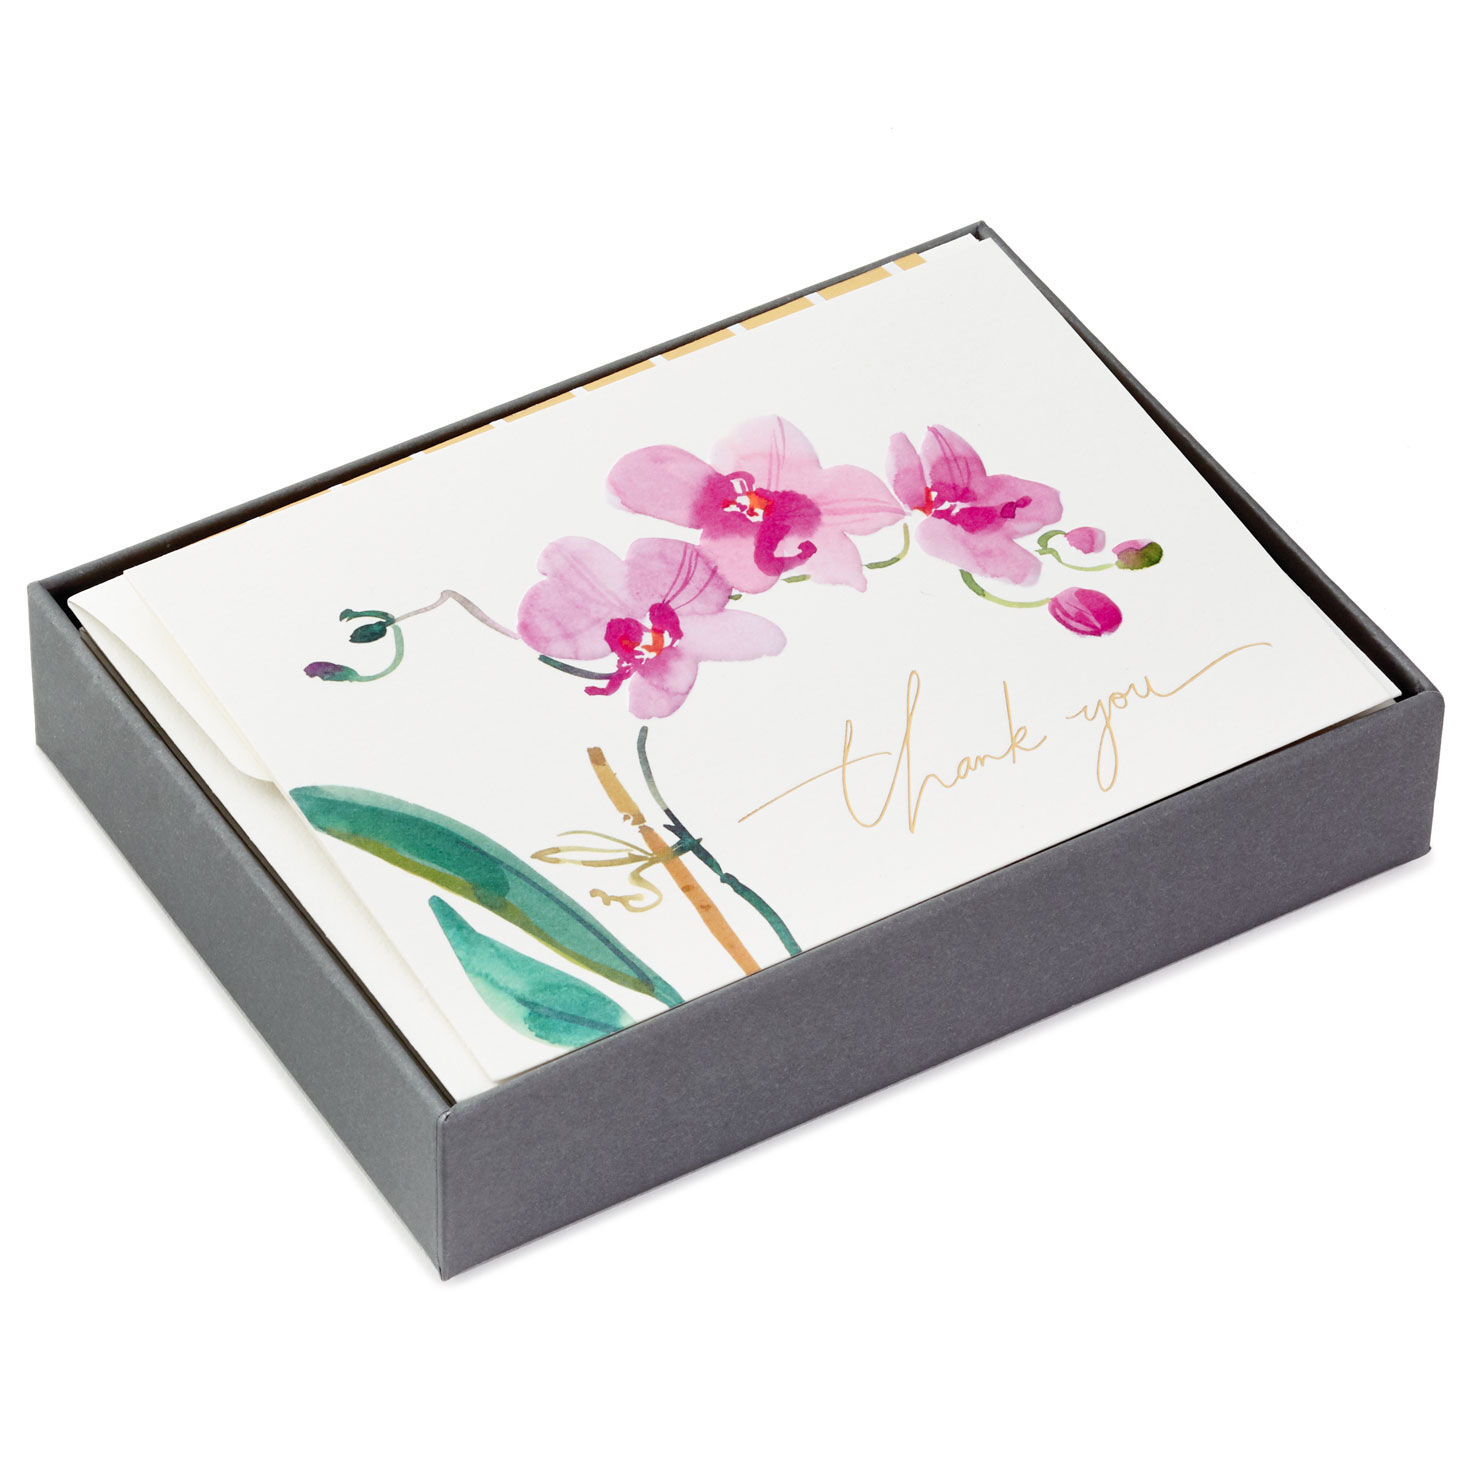 4 BOXES OF 15 FAST SHIP HALLMARK BLANK STATIONARY FOR THANK YOU NOTES AND OTHER